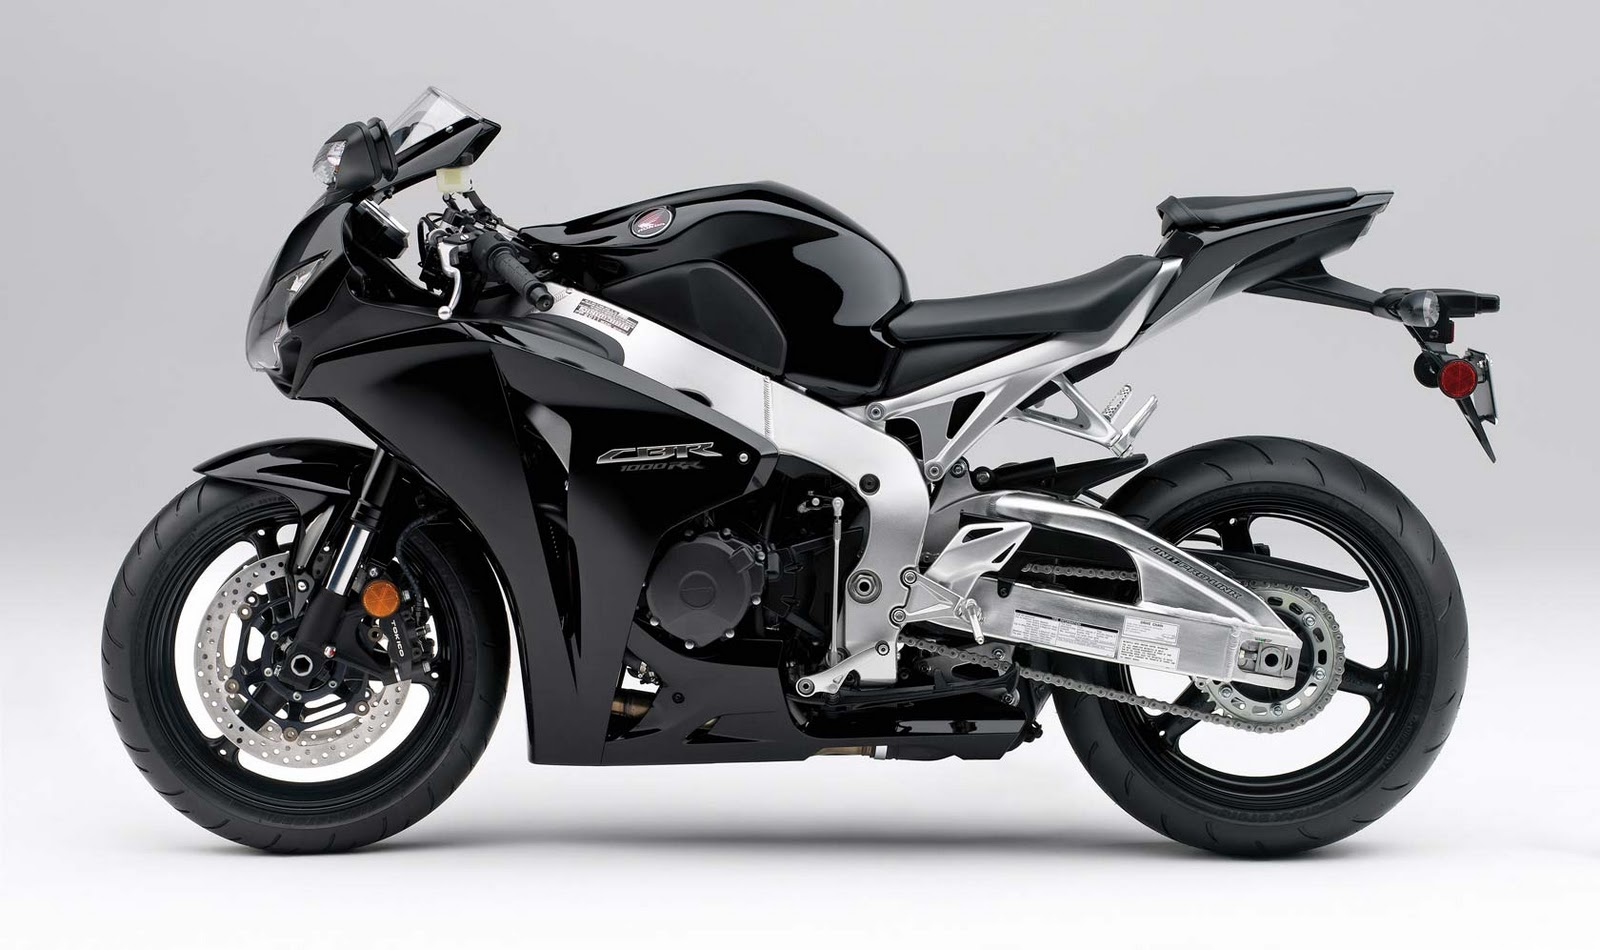 motorcycle pictures honda cbr 1000 rr 2011. Black Bedroom Furniture Sets. Home Design Ideas